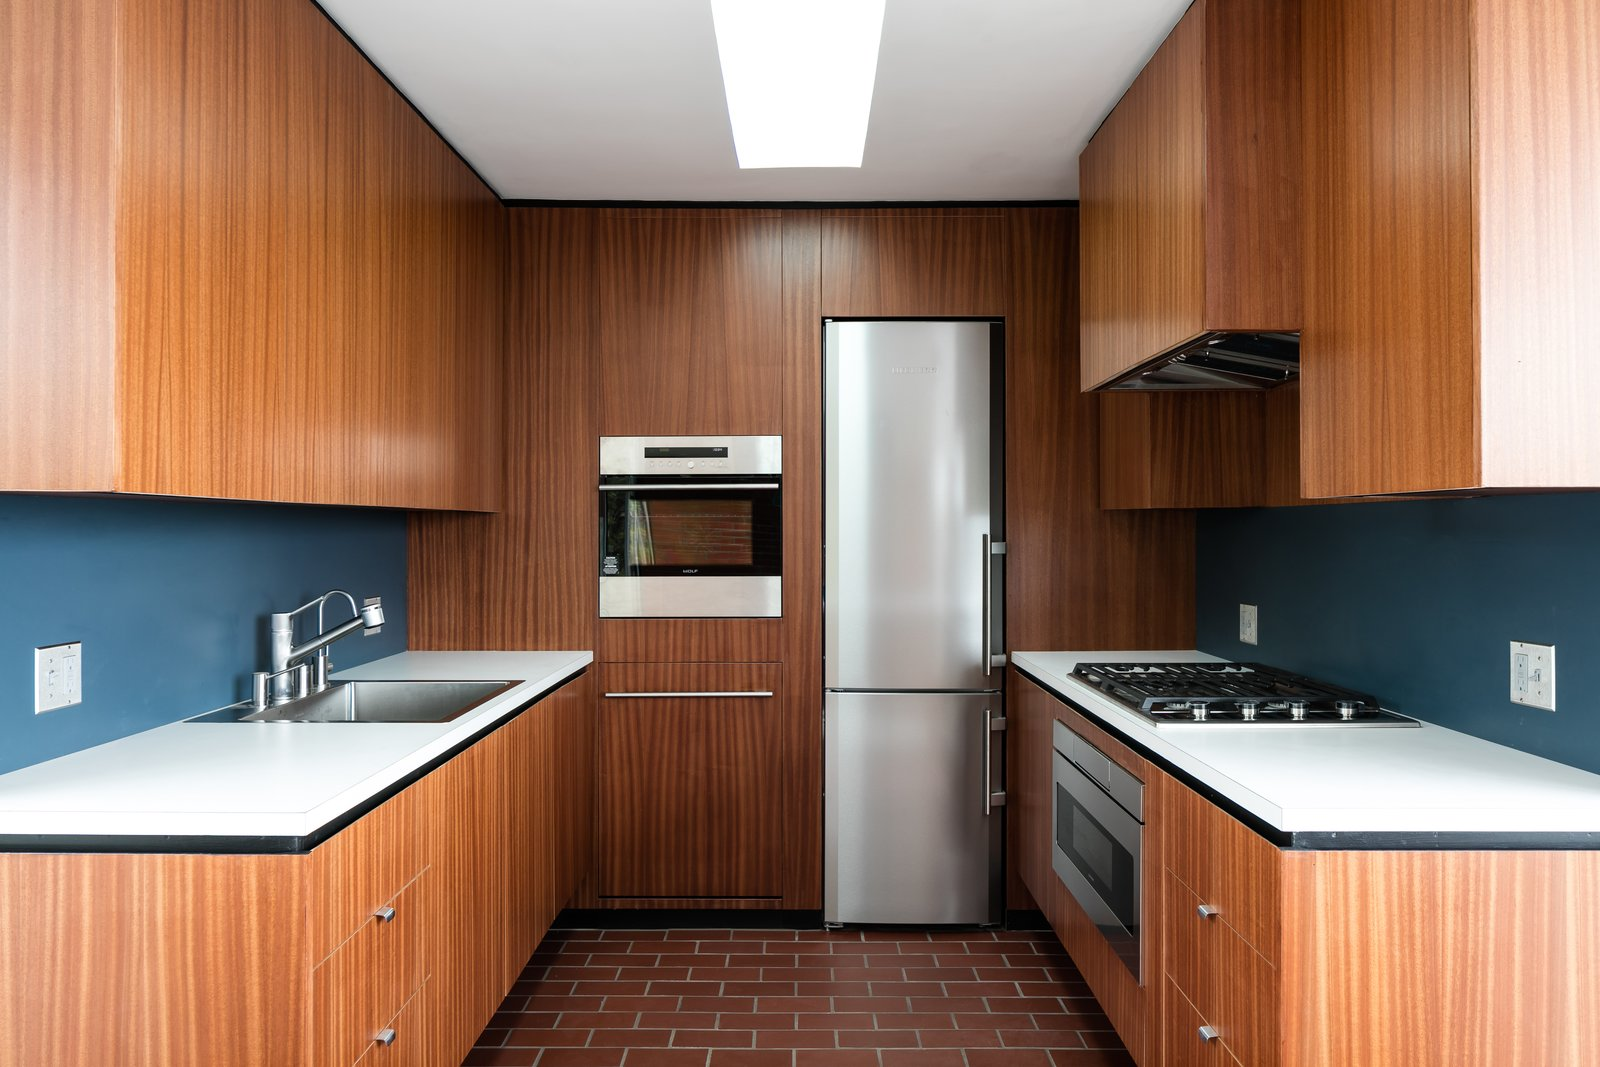 Kitchen, Range Hood, Laminate, Terra-cotta Tile, Ceiling, Drop In, Refrigerator, Wood, Cooktops, and Wall Oven A look at the kitchen.  Best Kitchen Terra-cotta Tile Refrigerator Photos from Craig Ellwood's Iconic Smith House in L.A. Is Listed For $3M